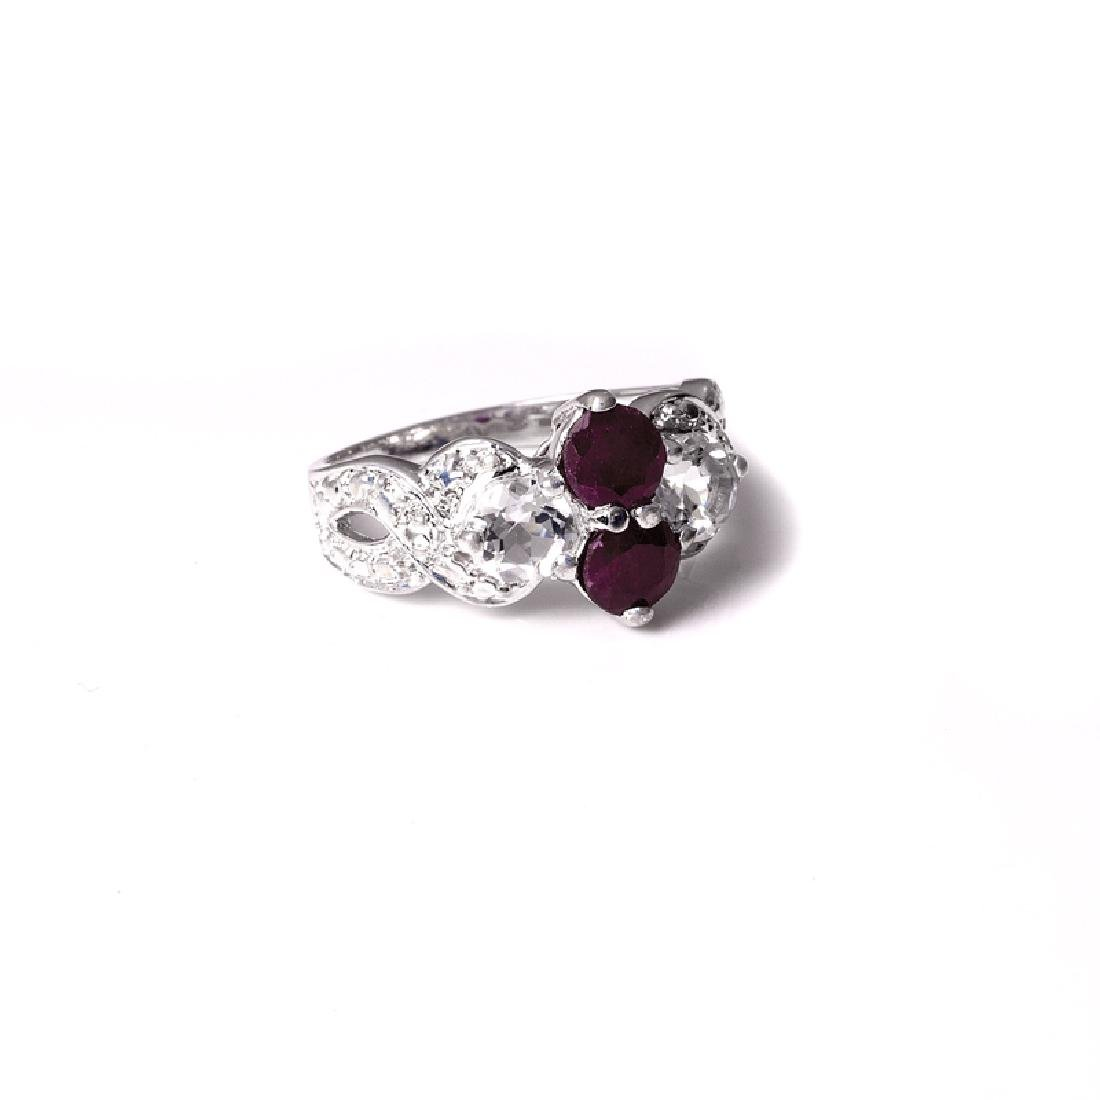 APP: 1.2k 1.02CT Round Cut Ruby And Topaz Platinum Over